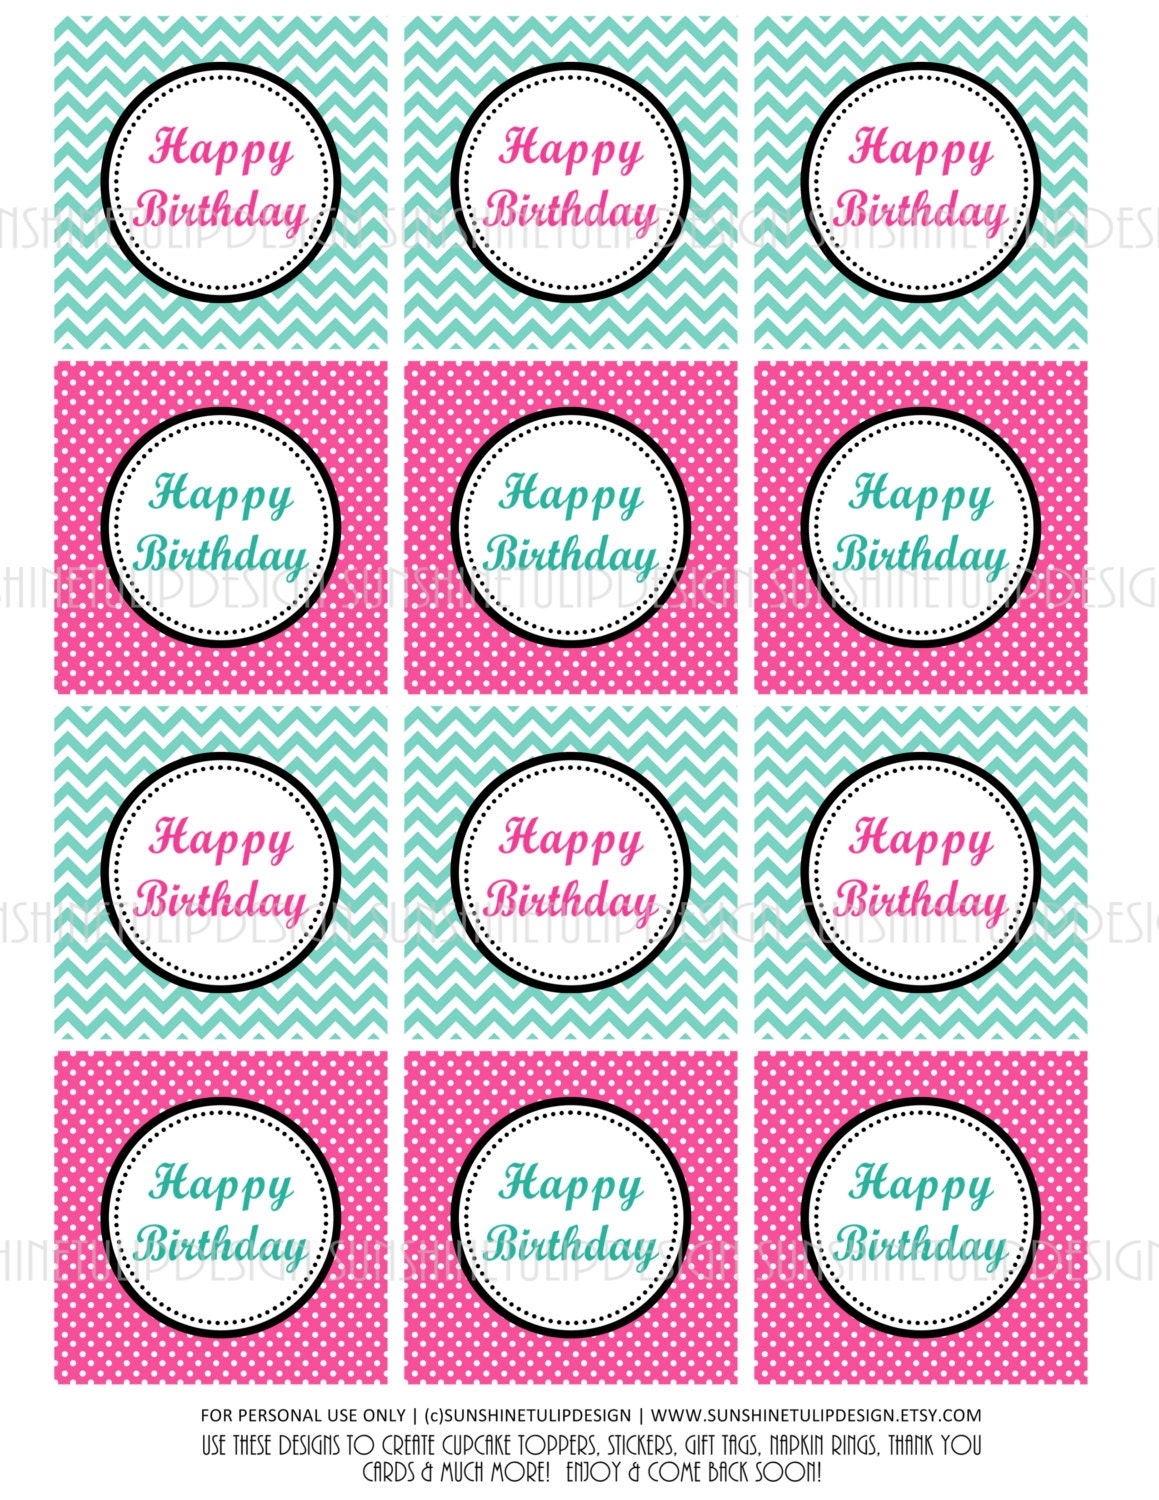 Happy Birthday Hot Pink and Aqua Cupcake Toppers Stickers